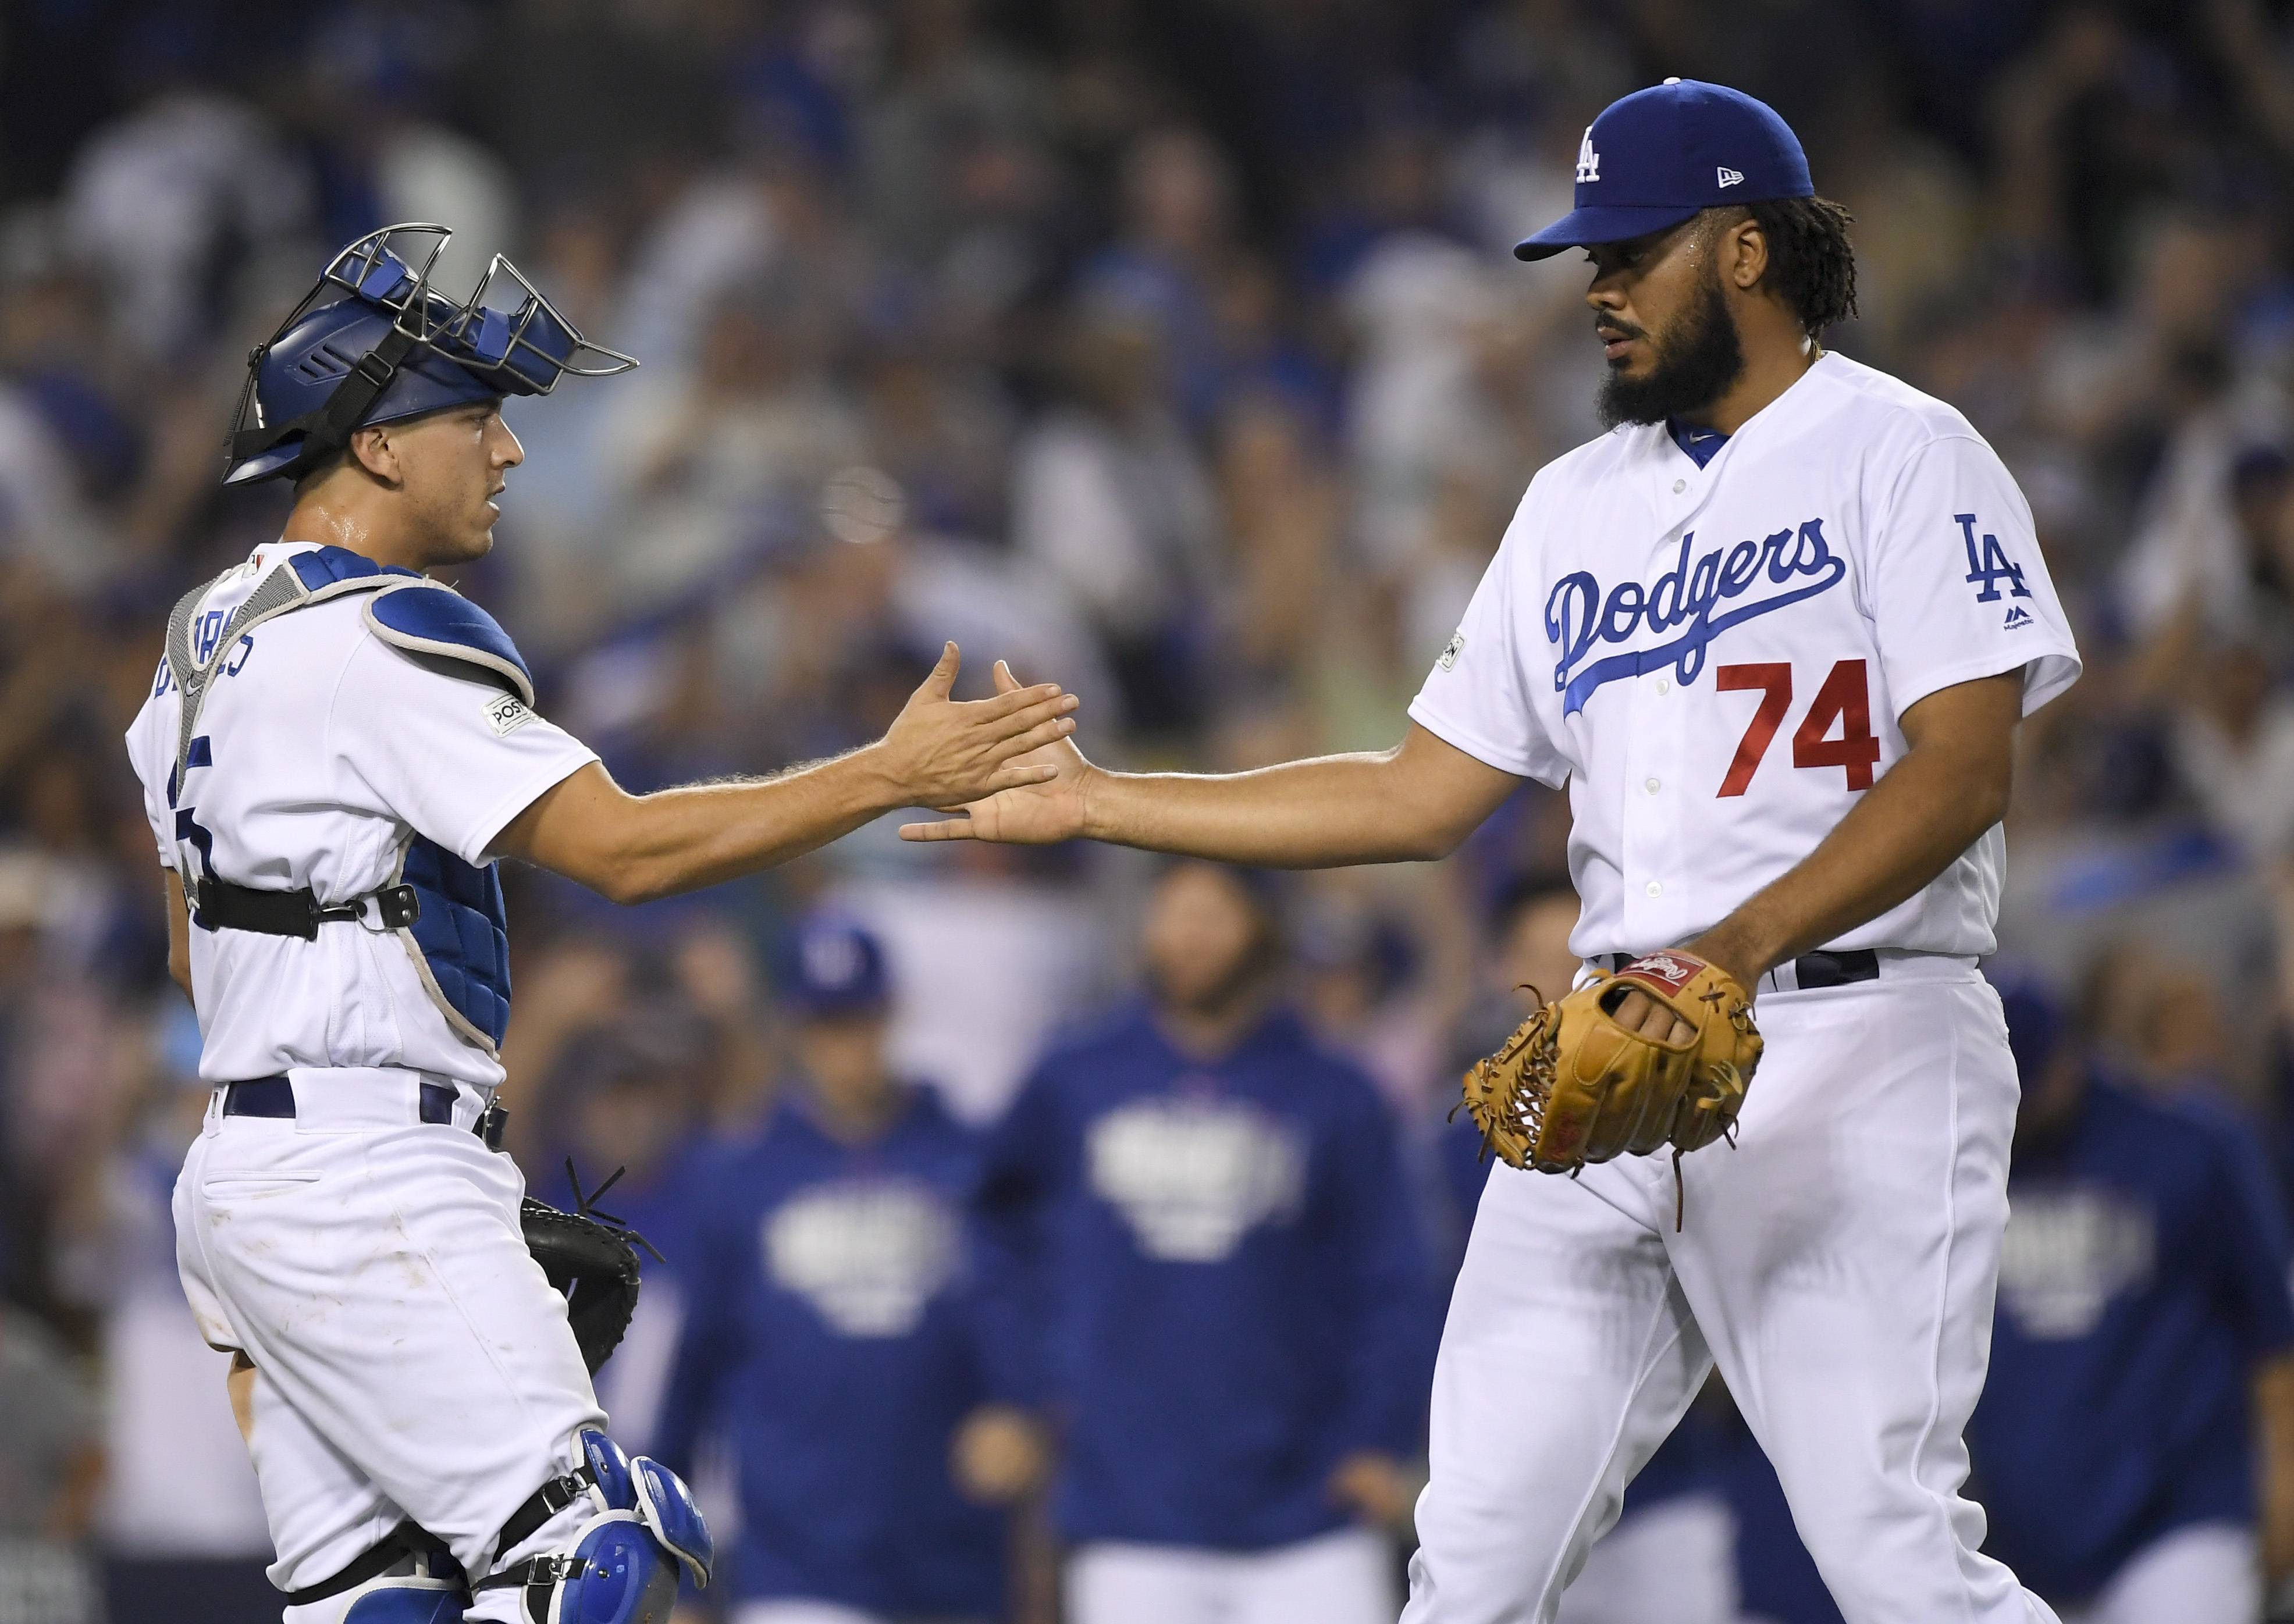 Los Angeles Dodgers relief pitcher Kenley Jansen, right, celebrates the team's 5-2 win Saturday with catcher Austin Barnes after Game 1 of the NLCS against the Chicago Cubs in Los Angeles.